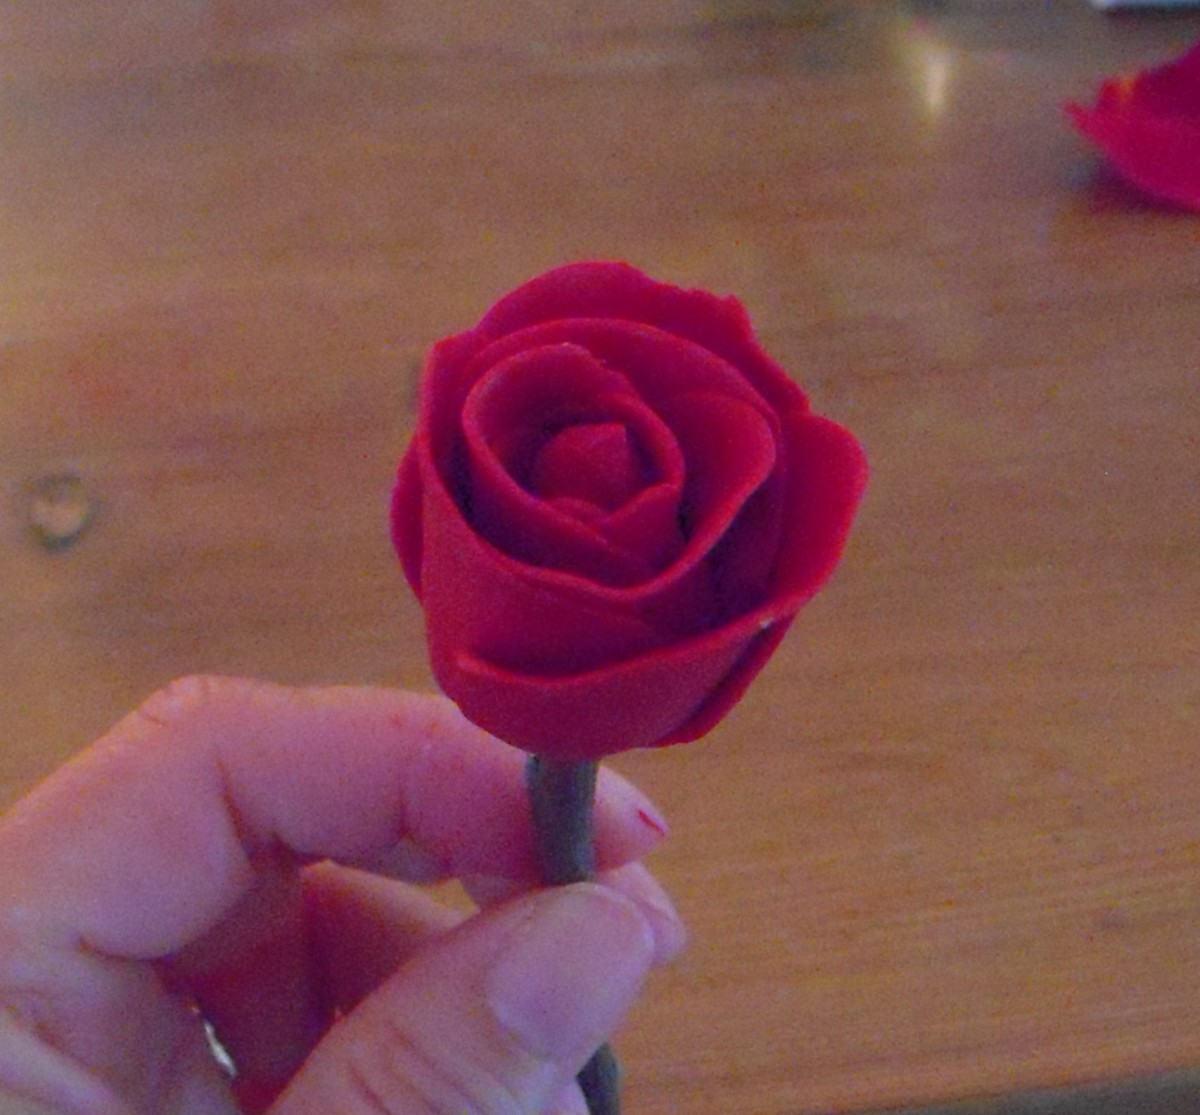 With all petals wrapped, slightly curl outward the edge of last petal so that it looks like the rose is blooming.